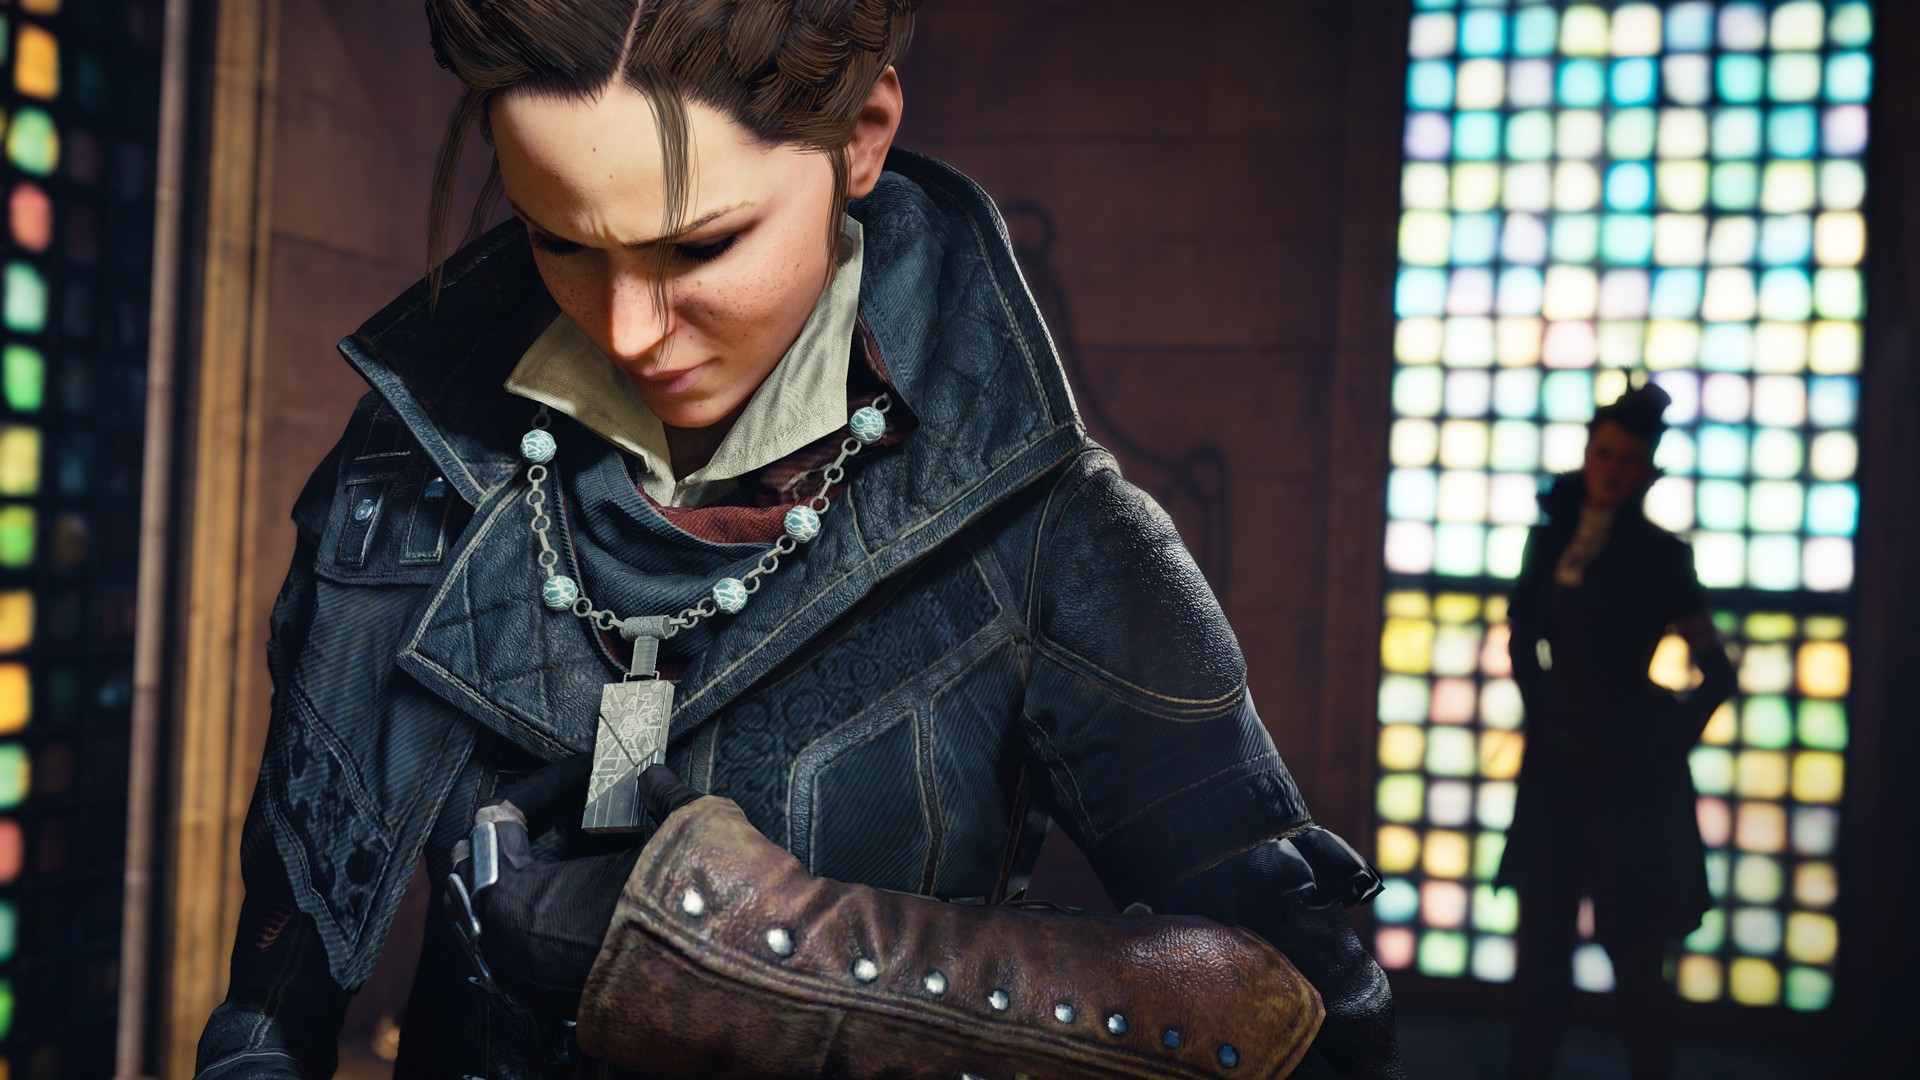 General 1920x1080 Assassin's Creed Syndicate Assassin's Creed Ubisoft